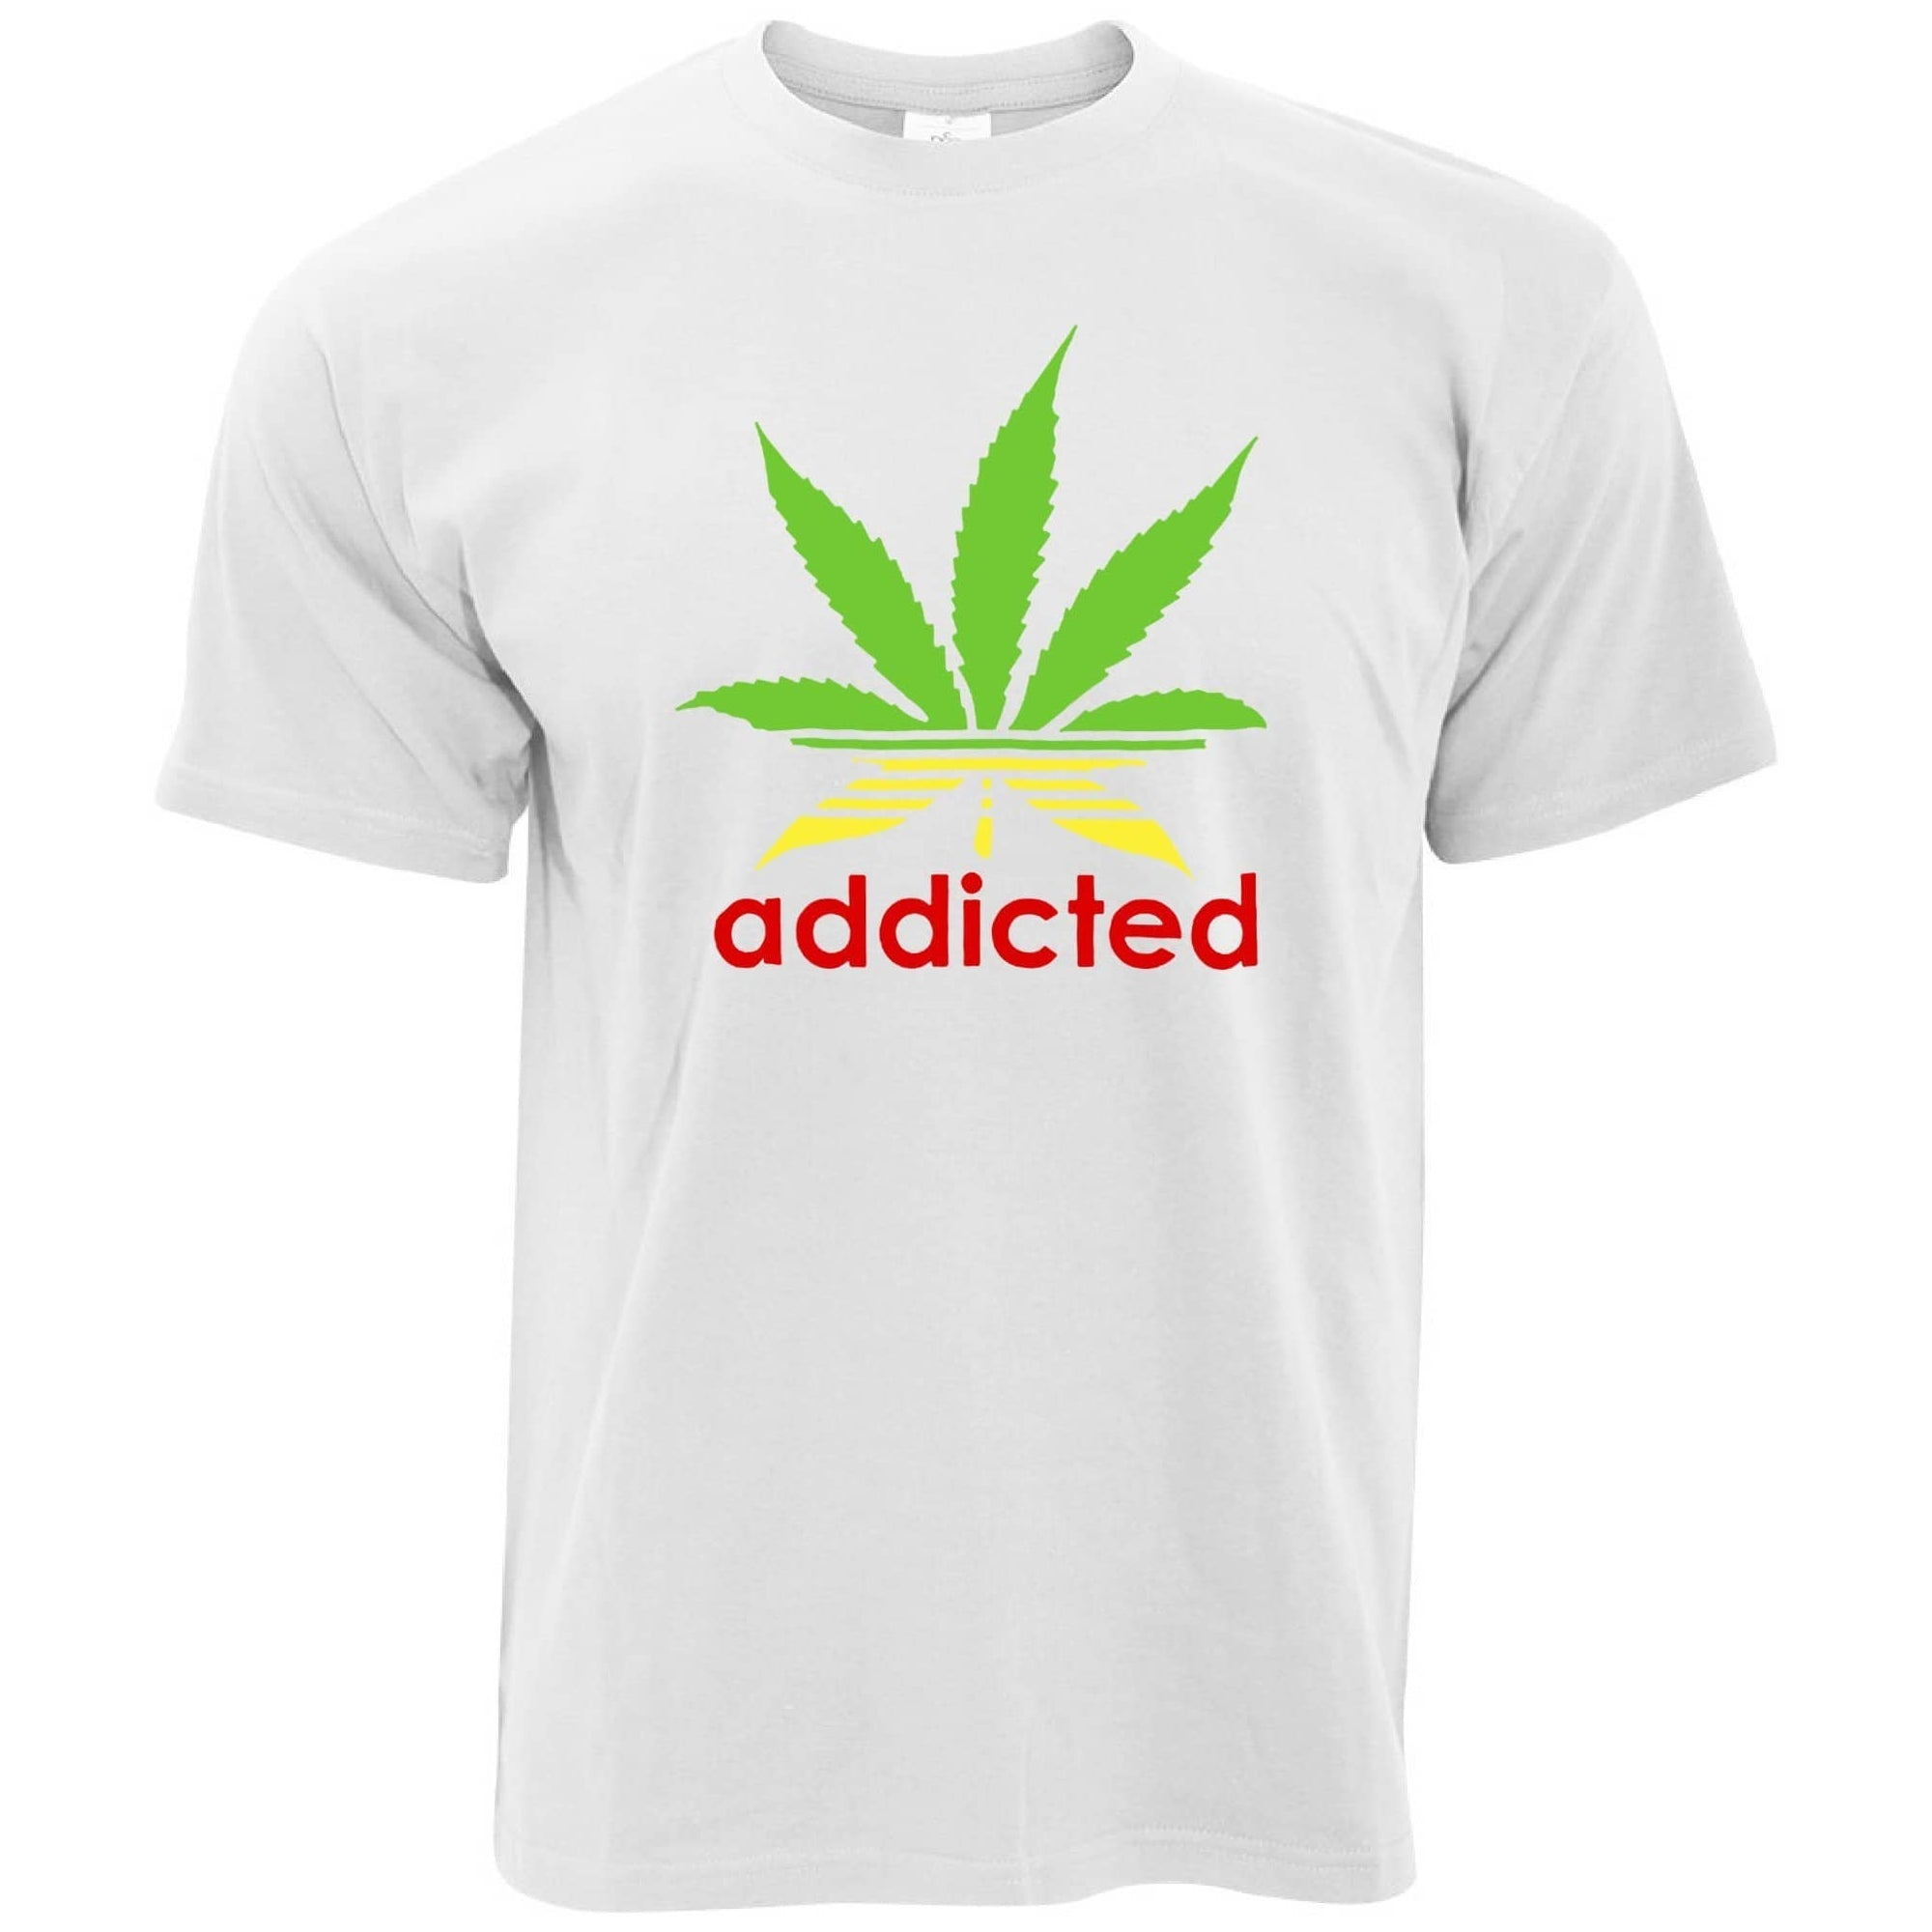 Addicted T Shirt Cannabis Leaf Parody